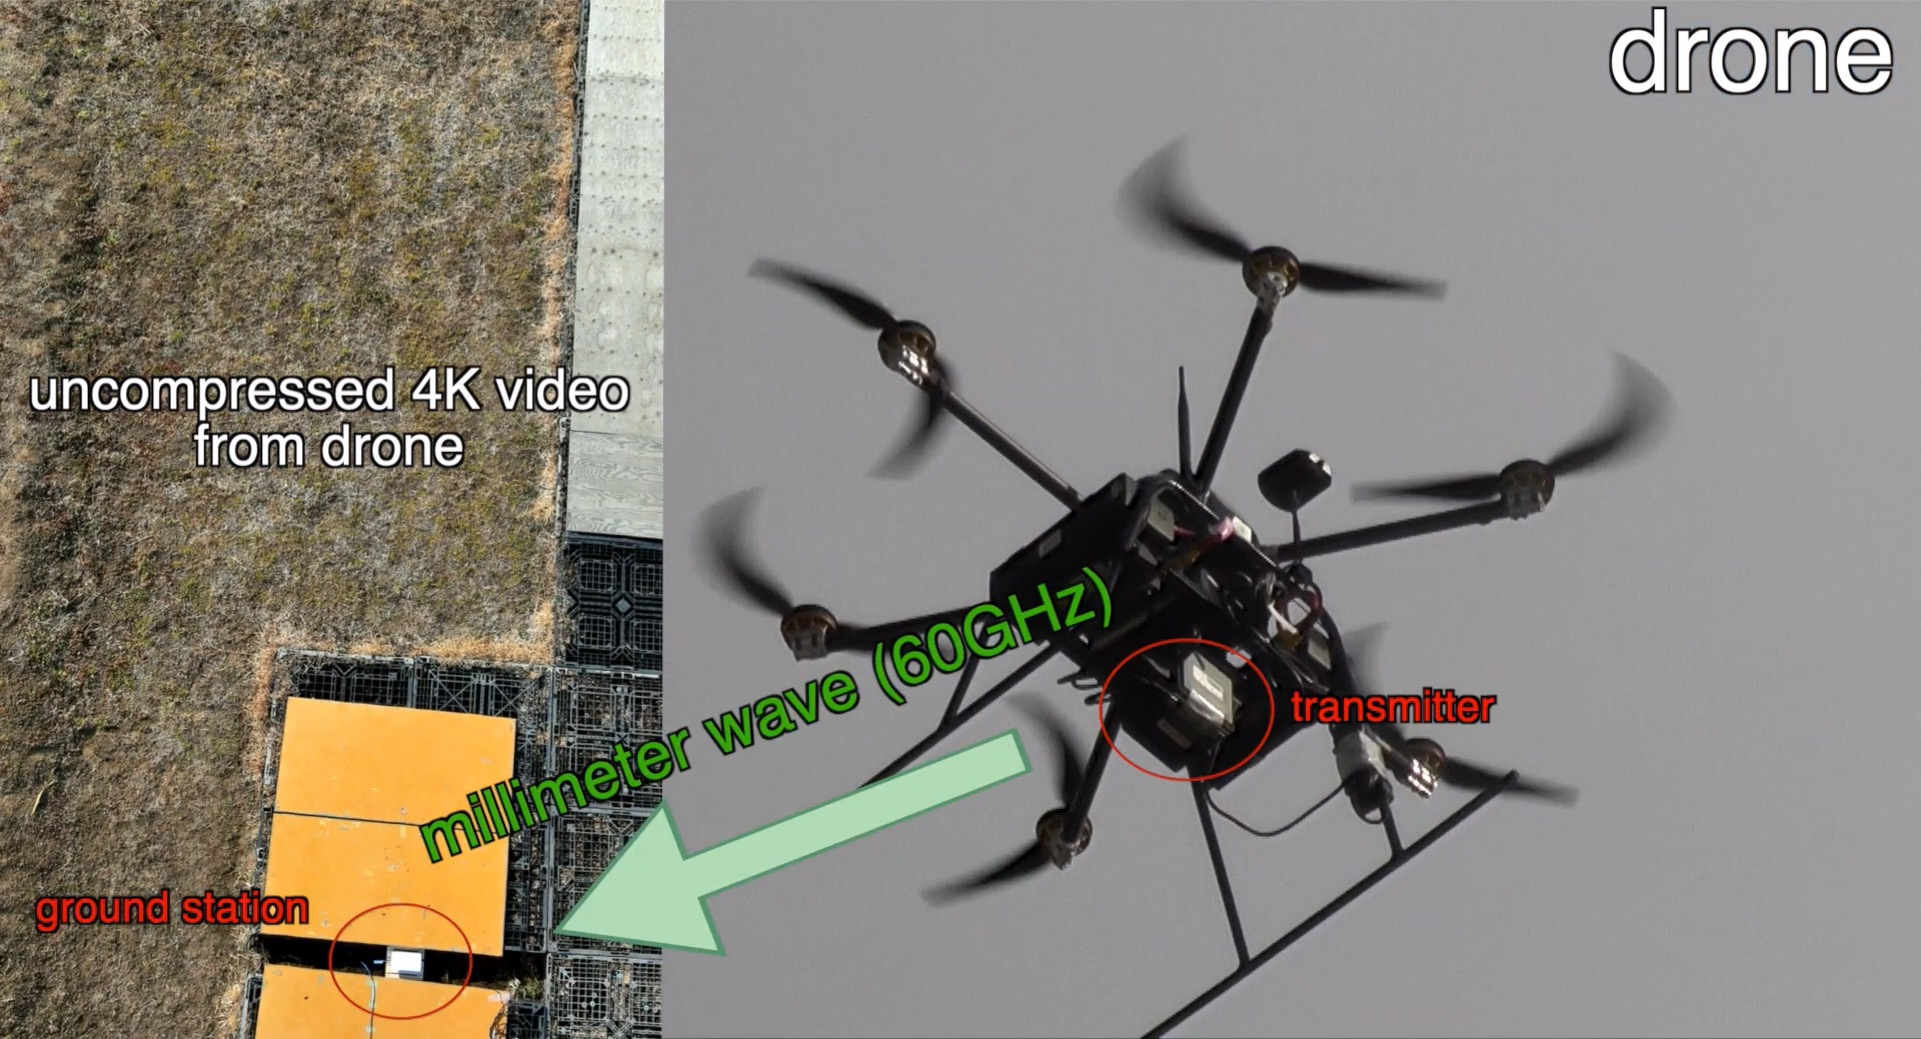 [Demo] Transmission Uncompressed 4K Video from Drone through Millimeter-Wave Communication